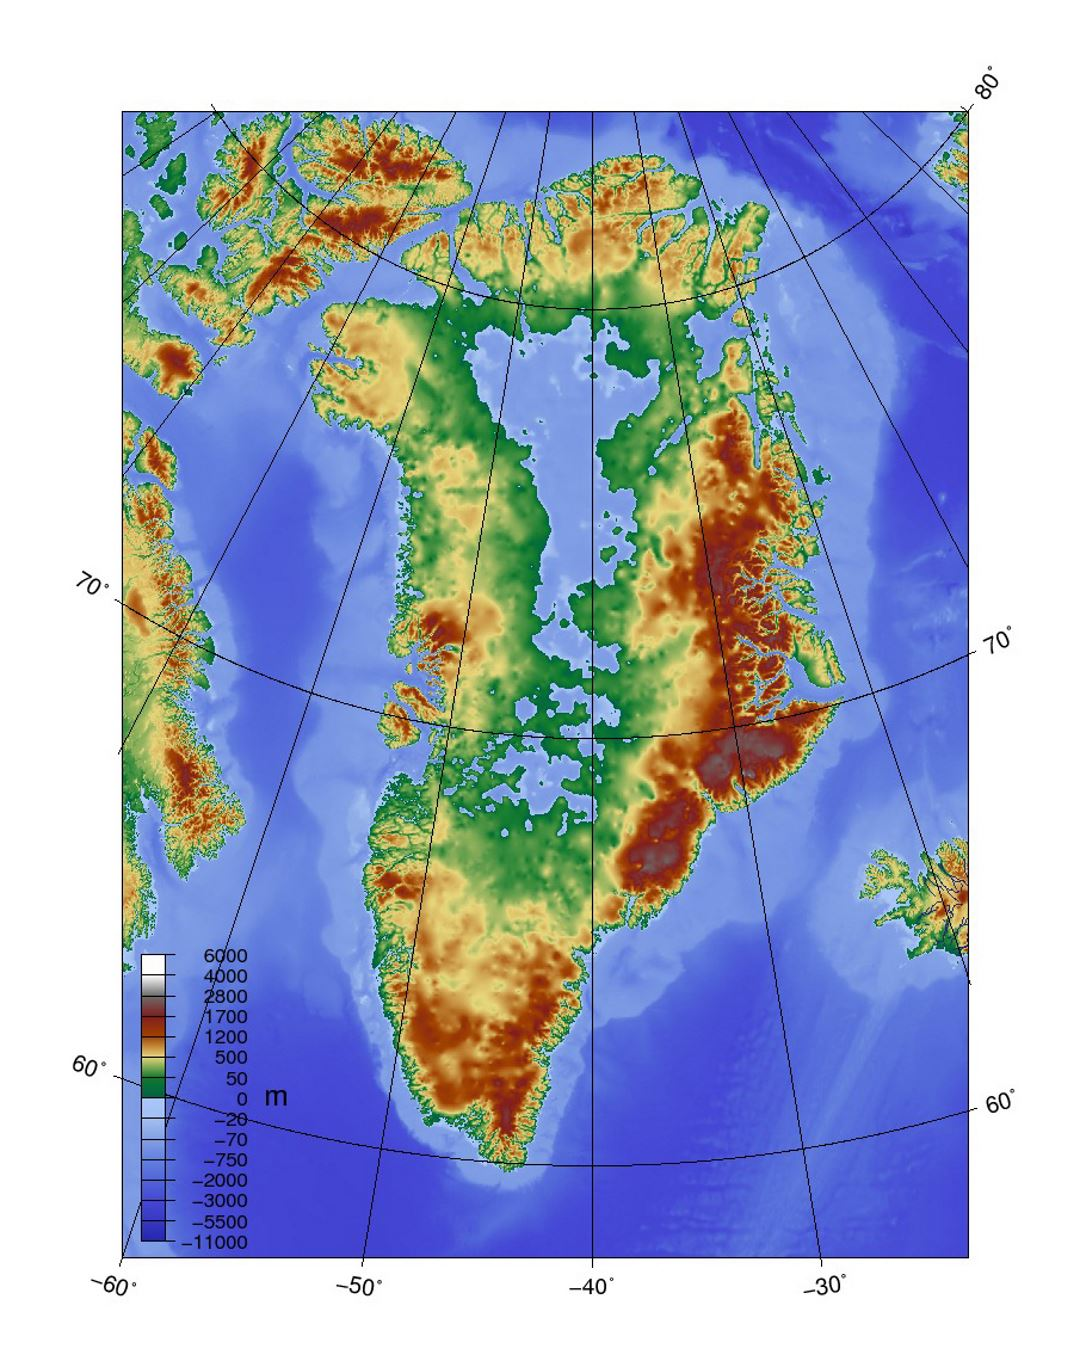 Detailed Topographic Map Of Greenland Greenland North America - North america topographic map